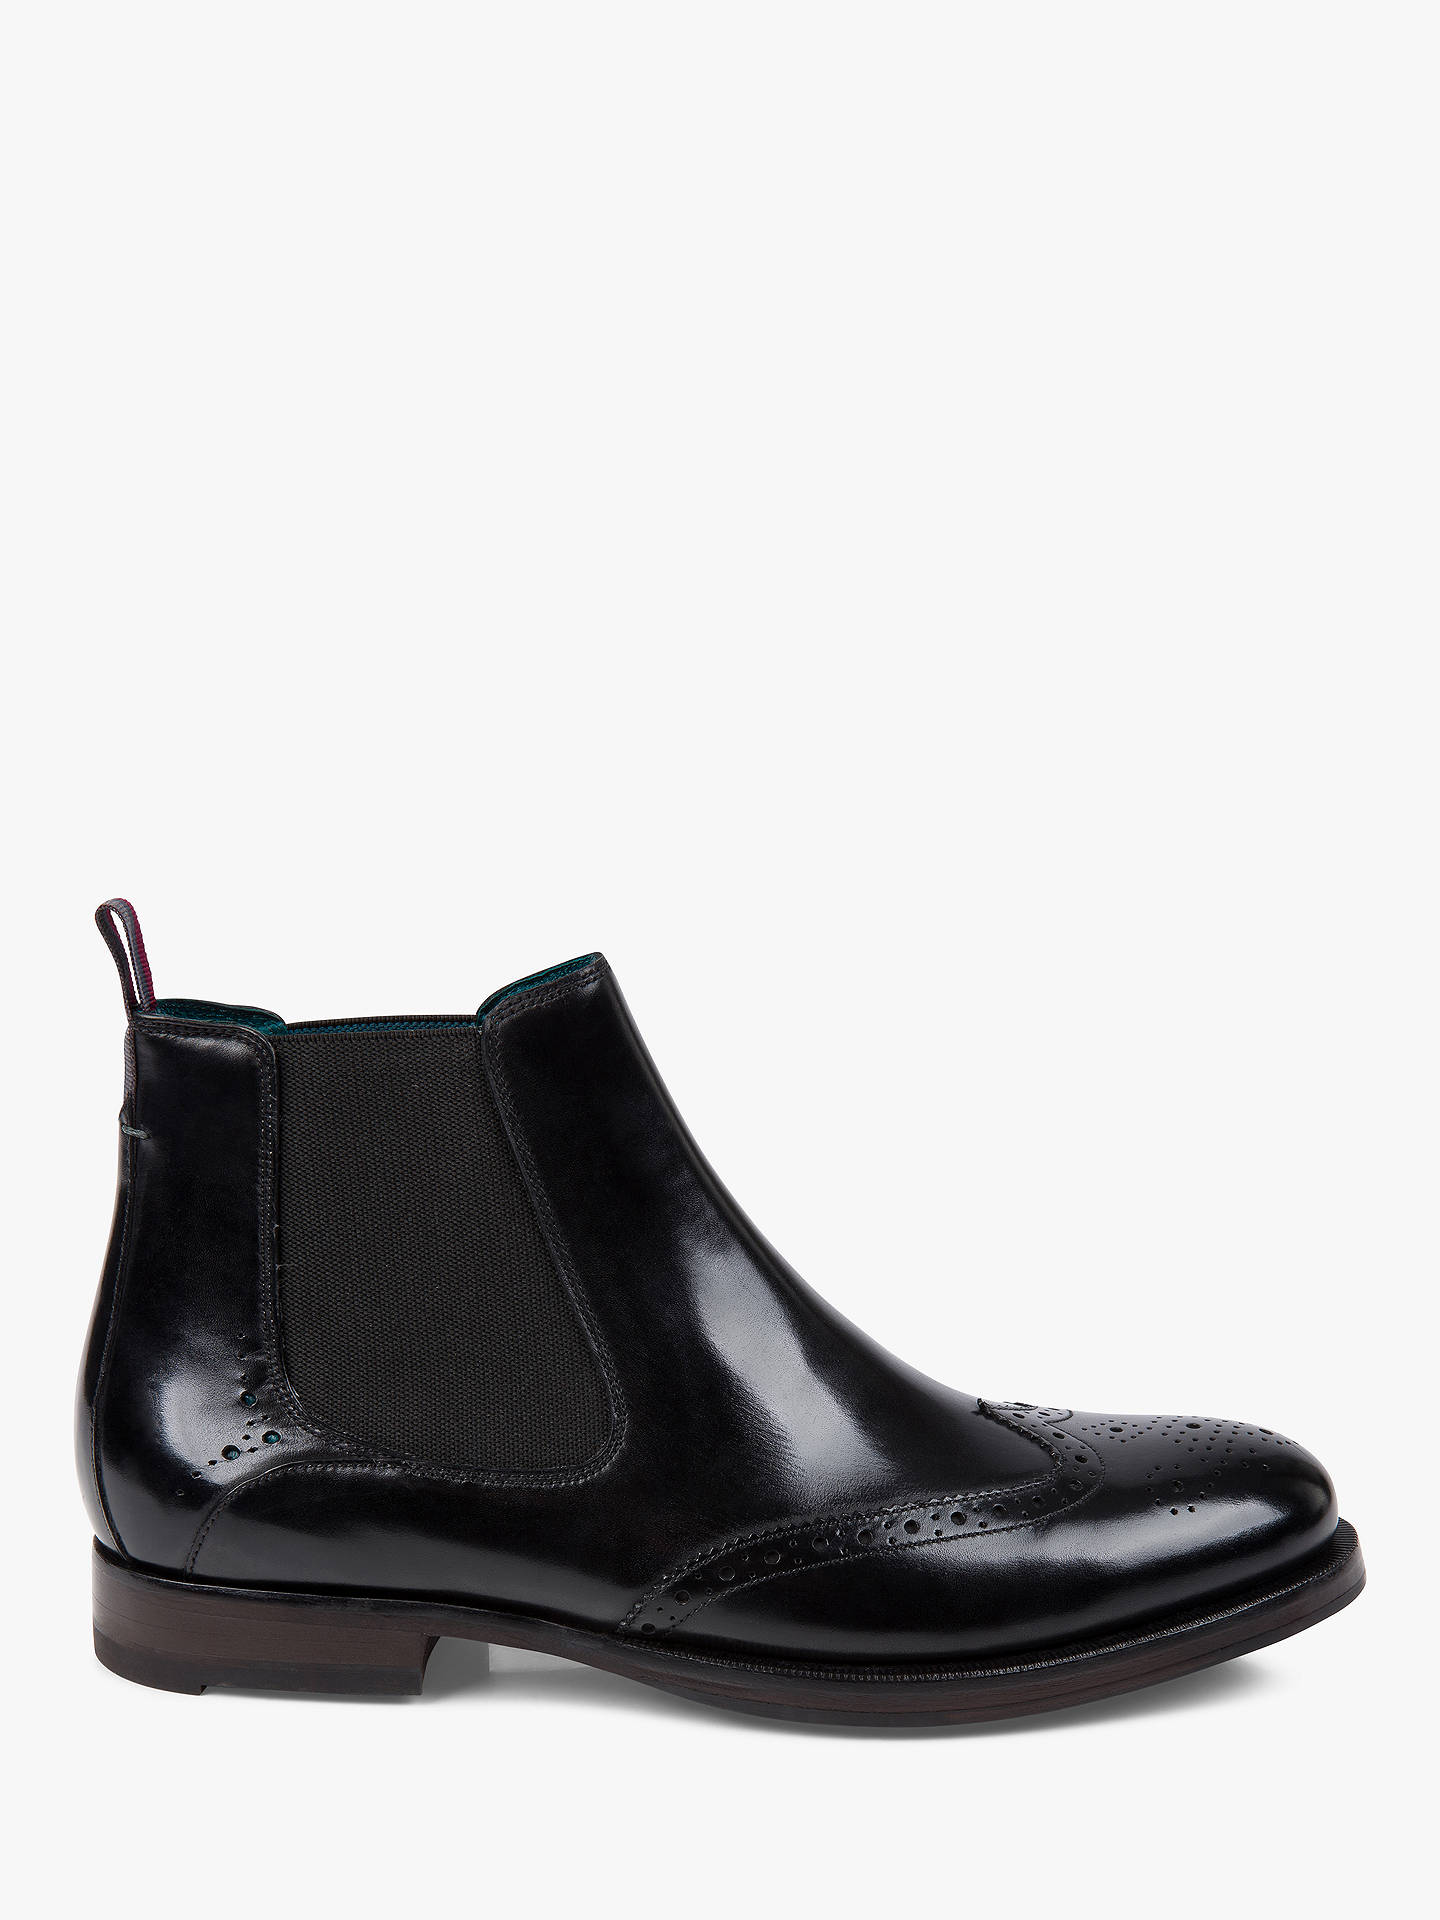 Buy Ted Baker Camheri Brogue Chelsea Boots, Black, 9 Online at johnlewis.com